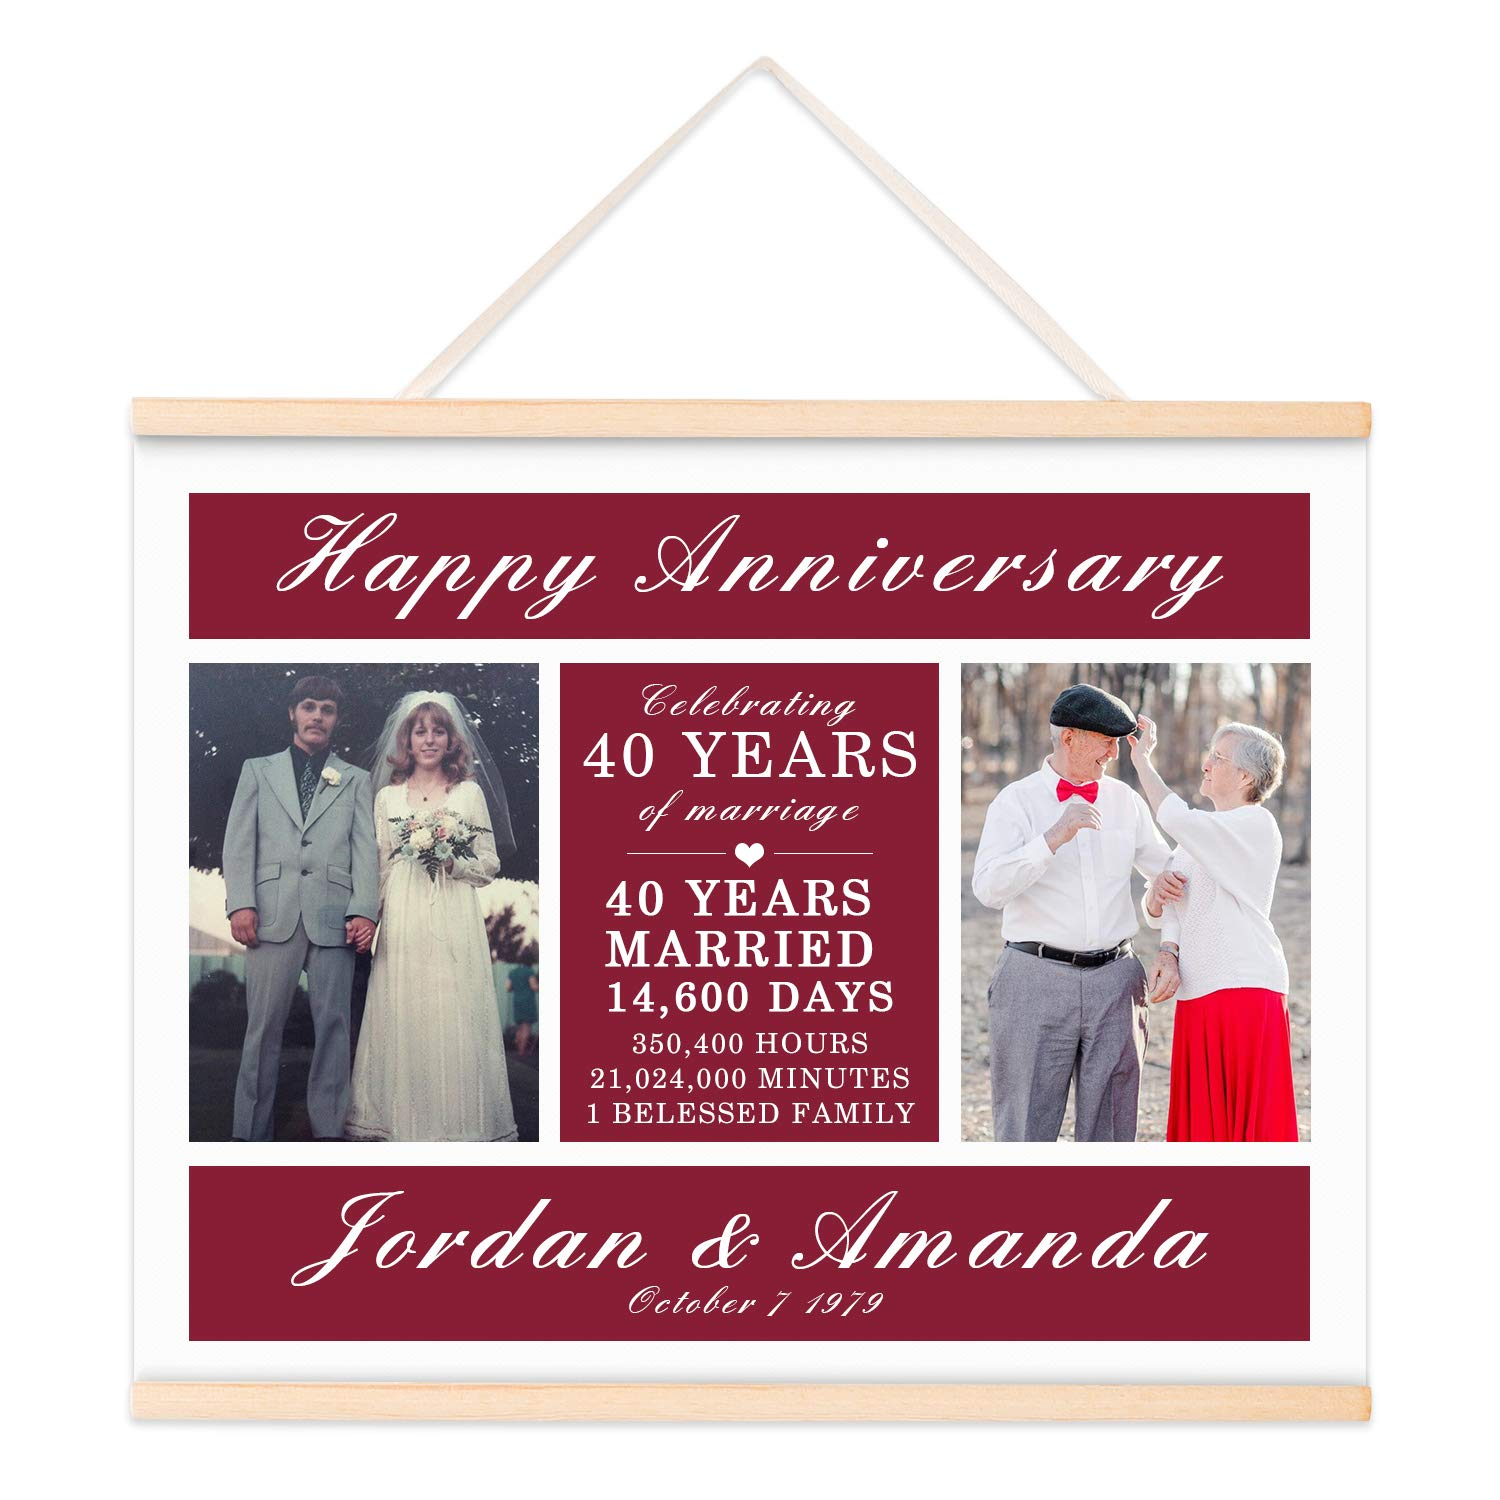 40th Anniversary Gifts, Personalized Then & Now Photo Gift for Couple, Ruby Anniversary Gifts for Parents, Canvas Picture 18''x14'', 40th-49th Anniversary ...